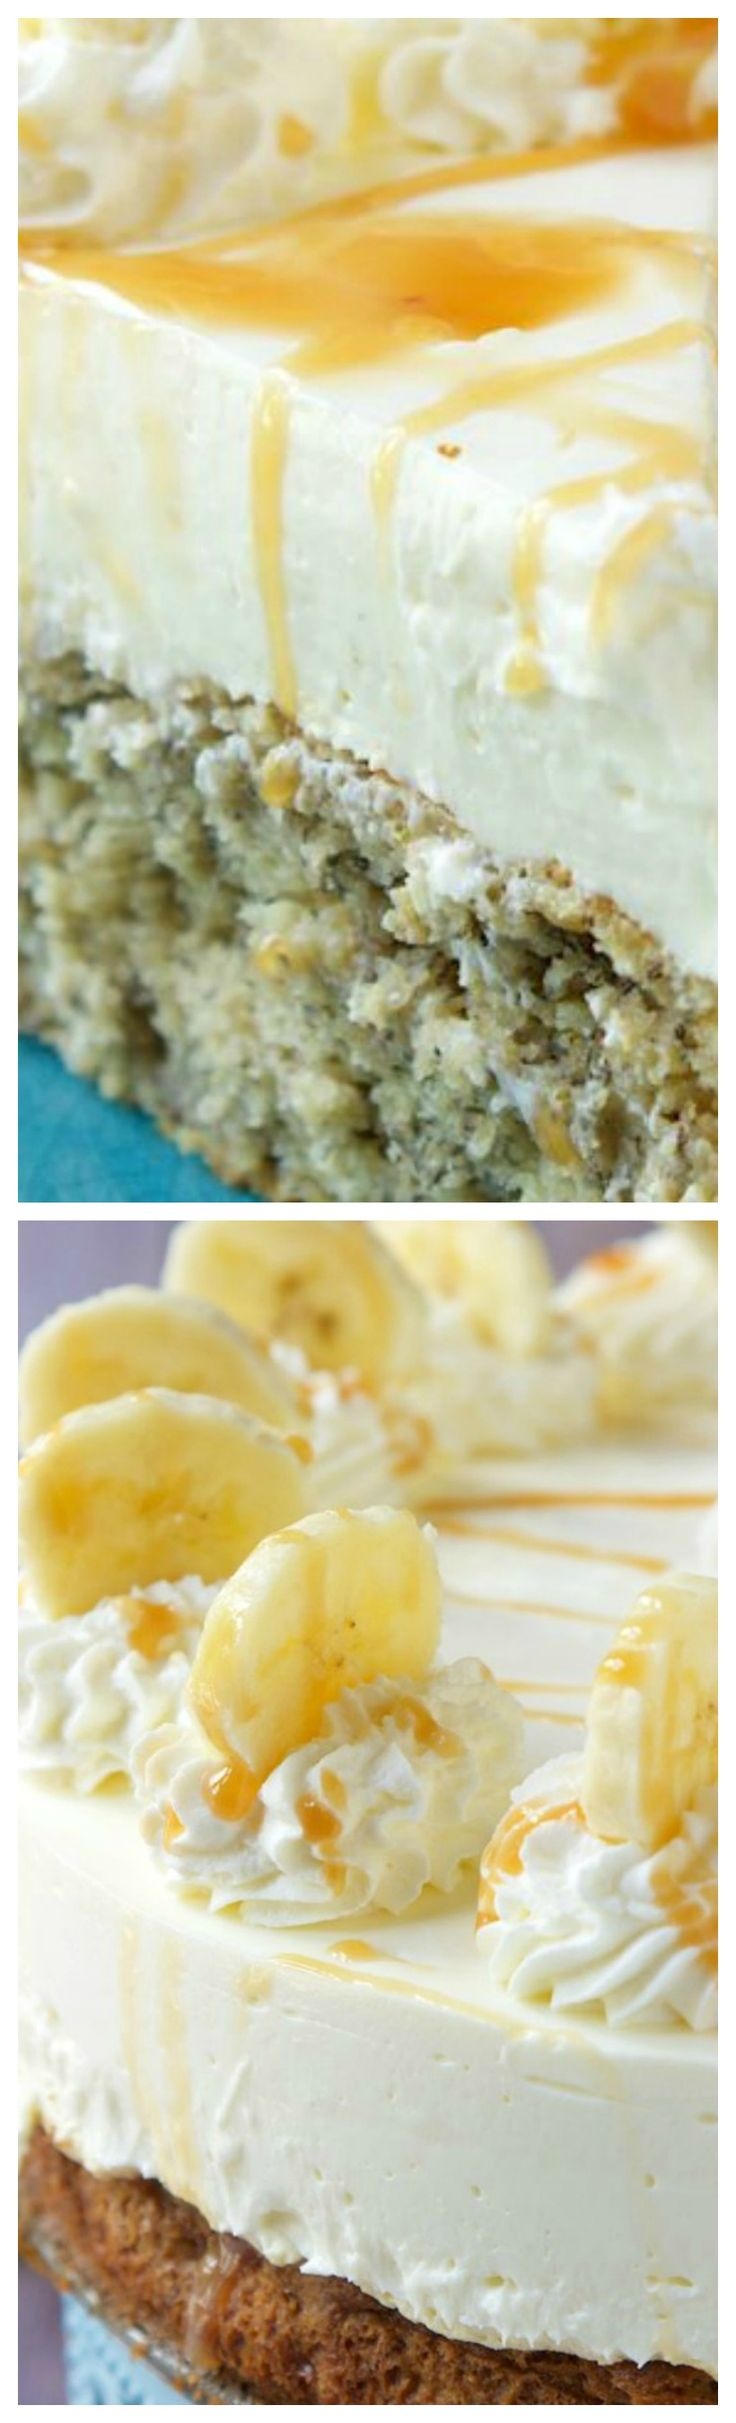 Banana Bread Bottom Cheesecake ~ Deliciously moist banana bread topped with a no bake cheesecake that is rich and creamy.